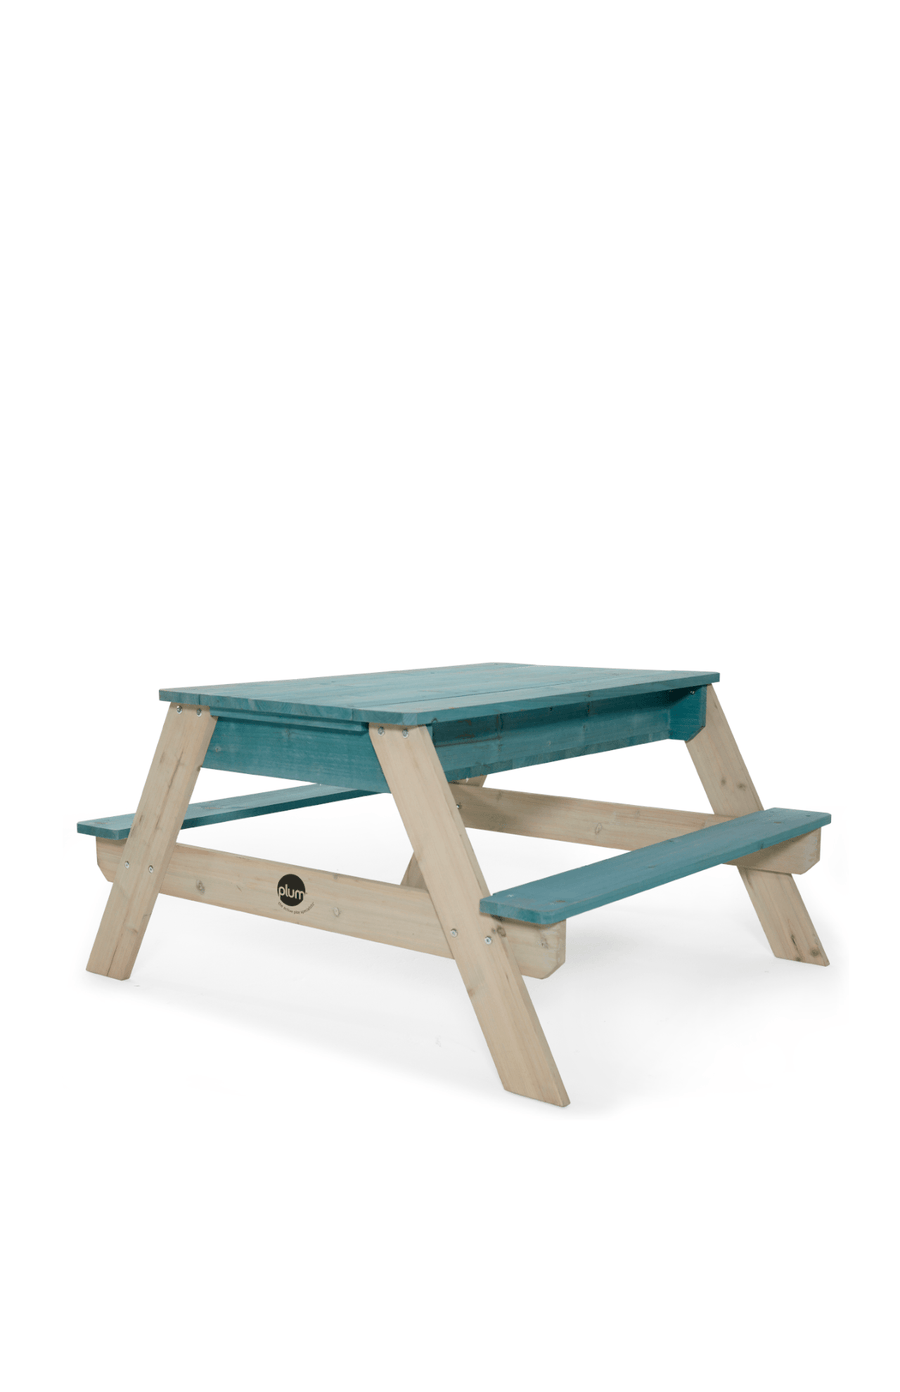 Plum® Surfside Wooden Sand & Water Picnic Table - Teal